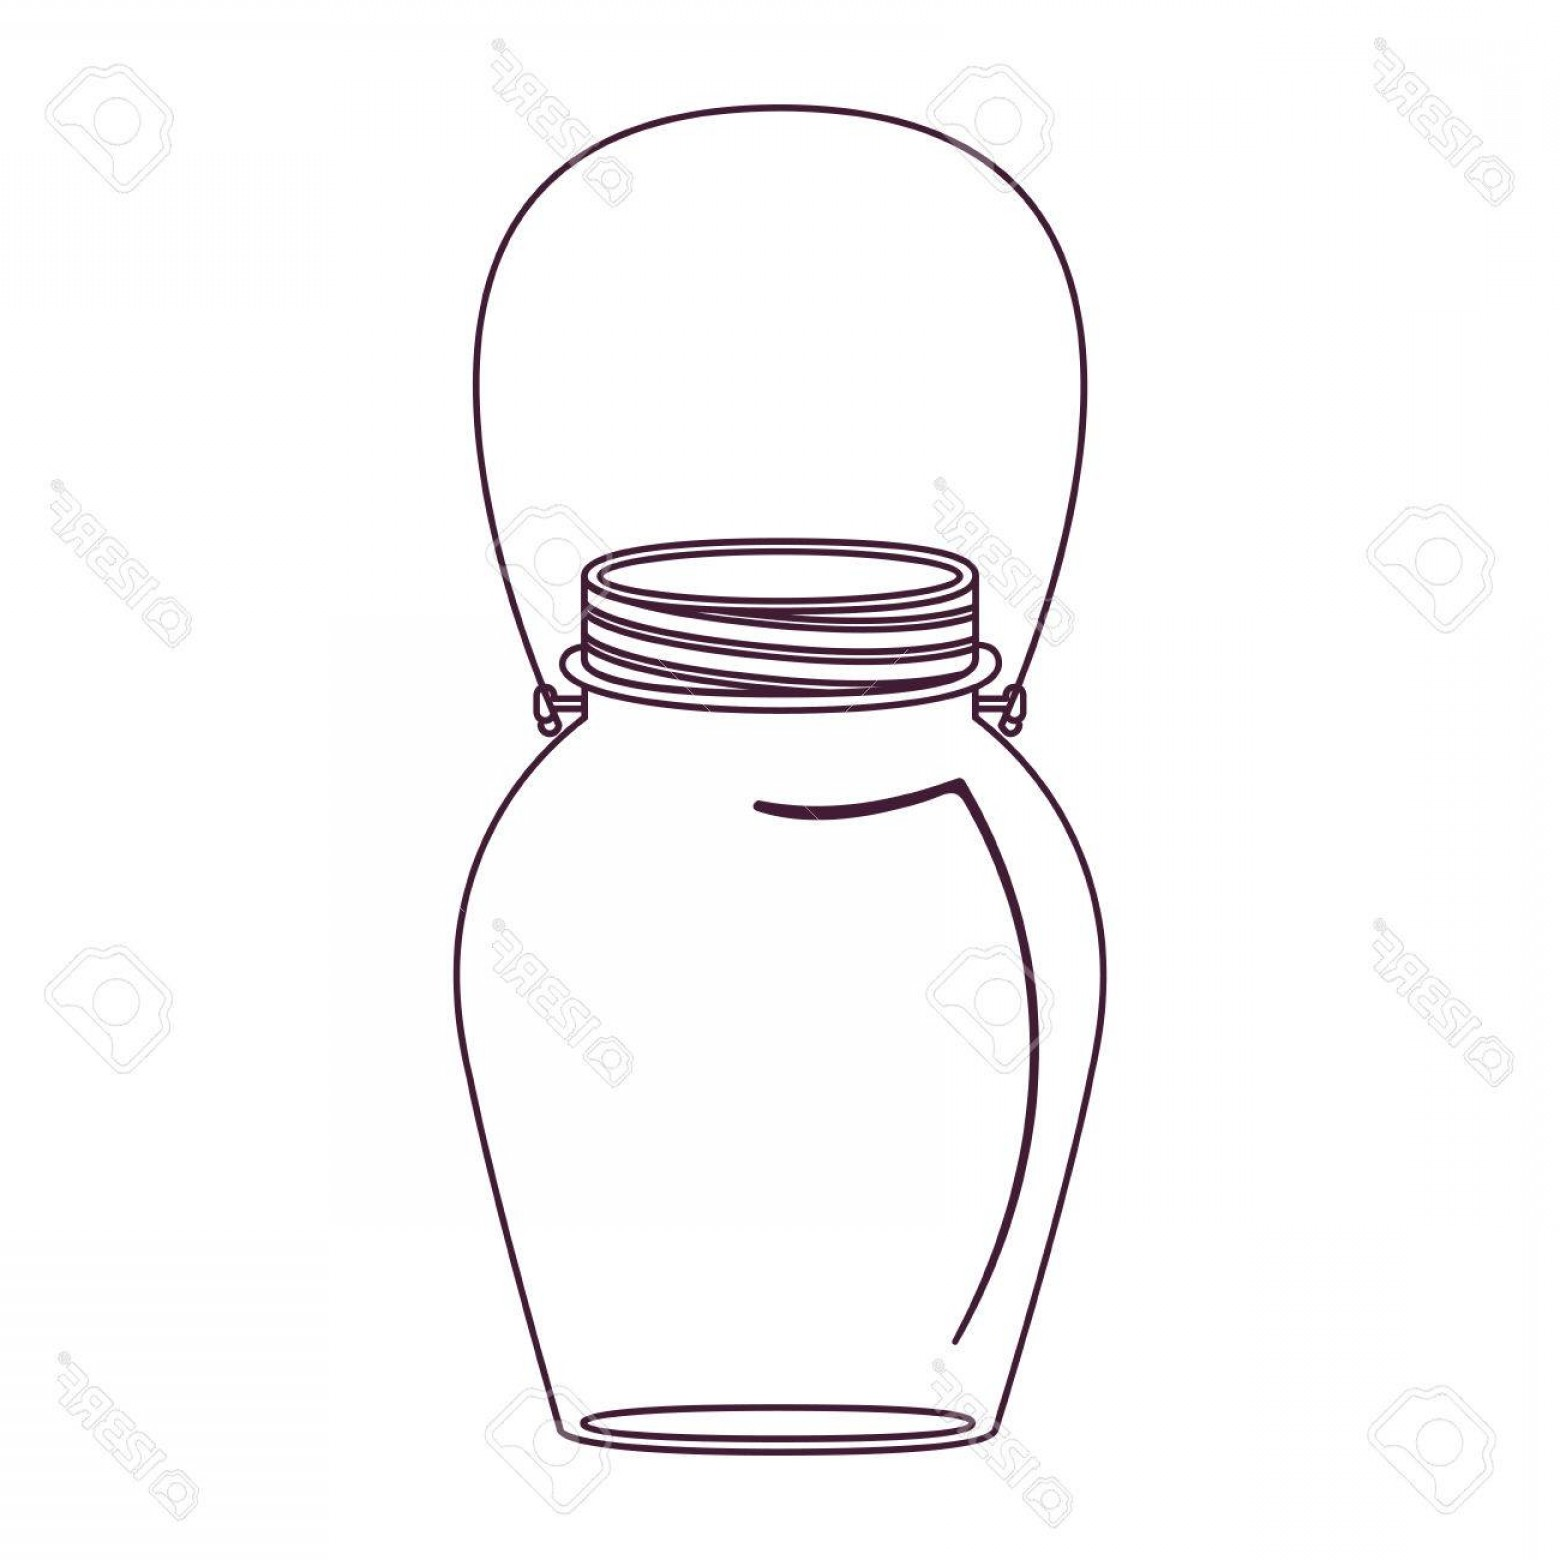 Mason Jar Outline Vector: Photostock Vector Silhouette Glass Jar Decorative With Handle Vector Illustration